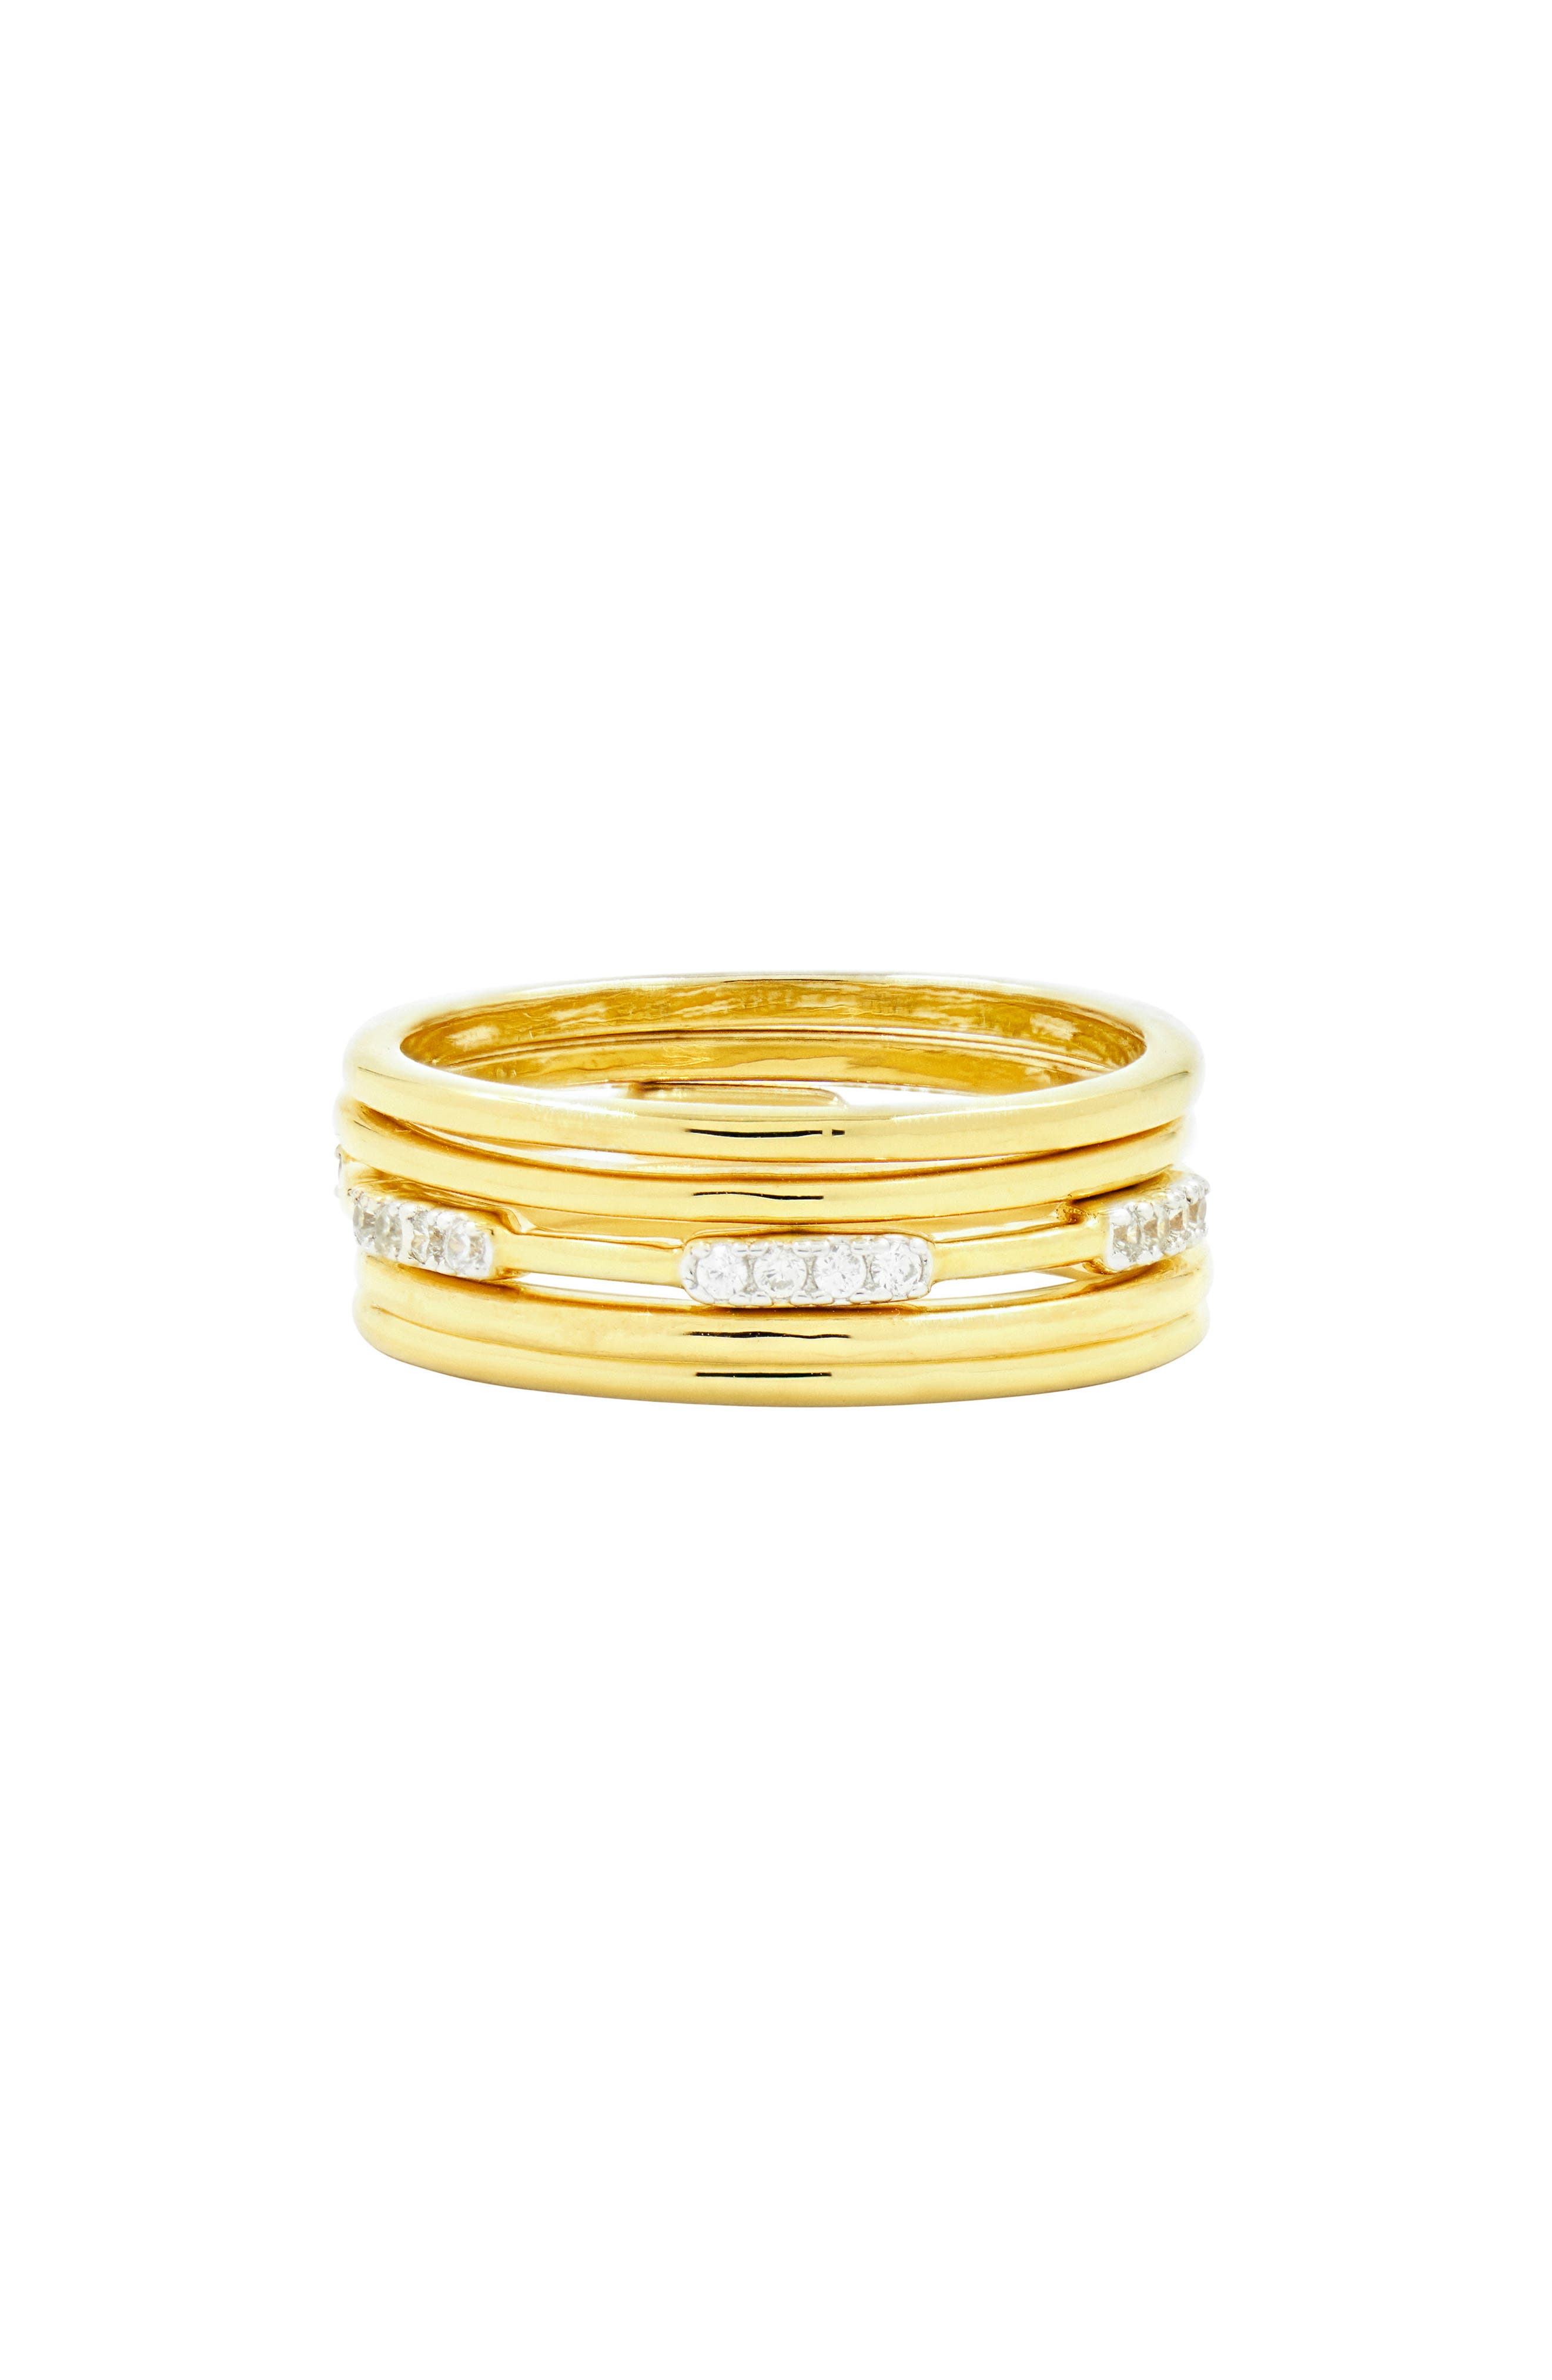 Radiance Stacking Ring,                             Main thumbnail 1, color,                             Silver/ Gold